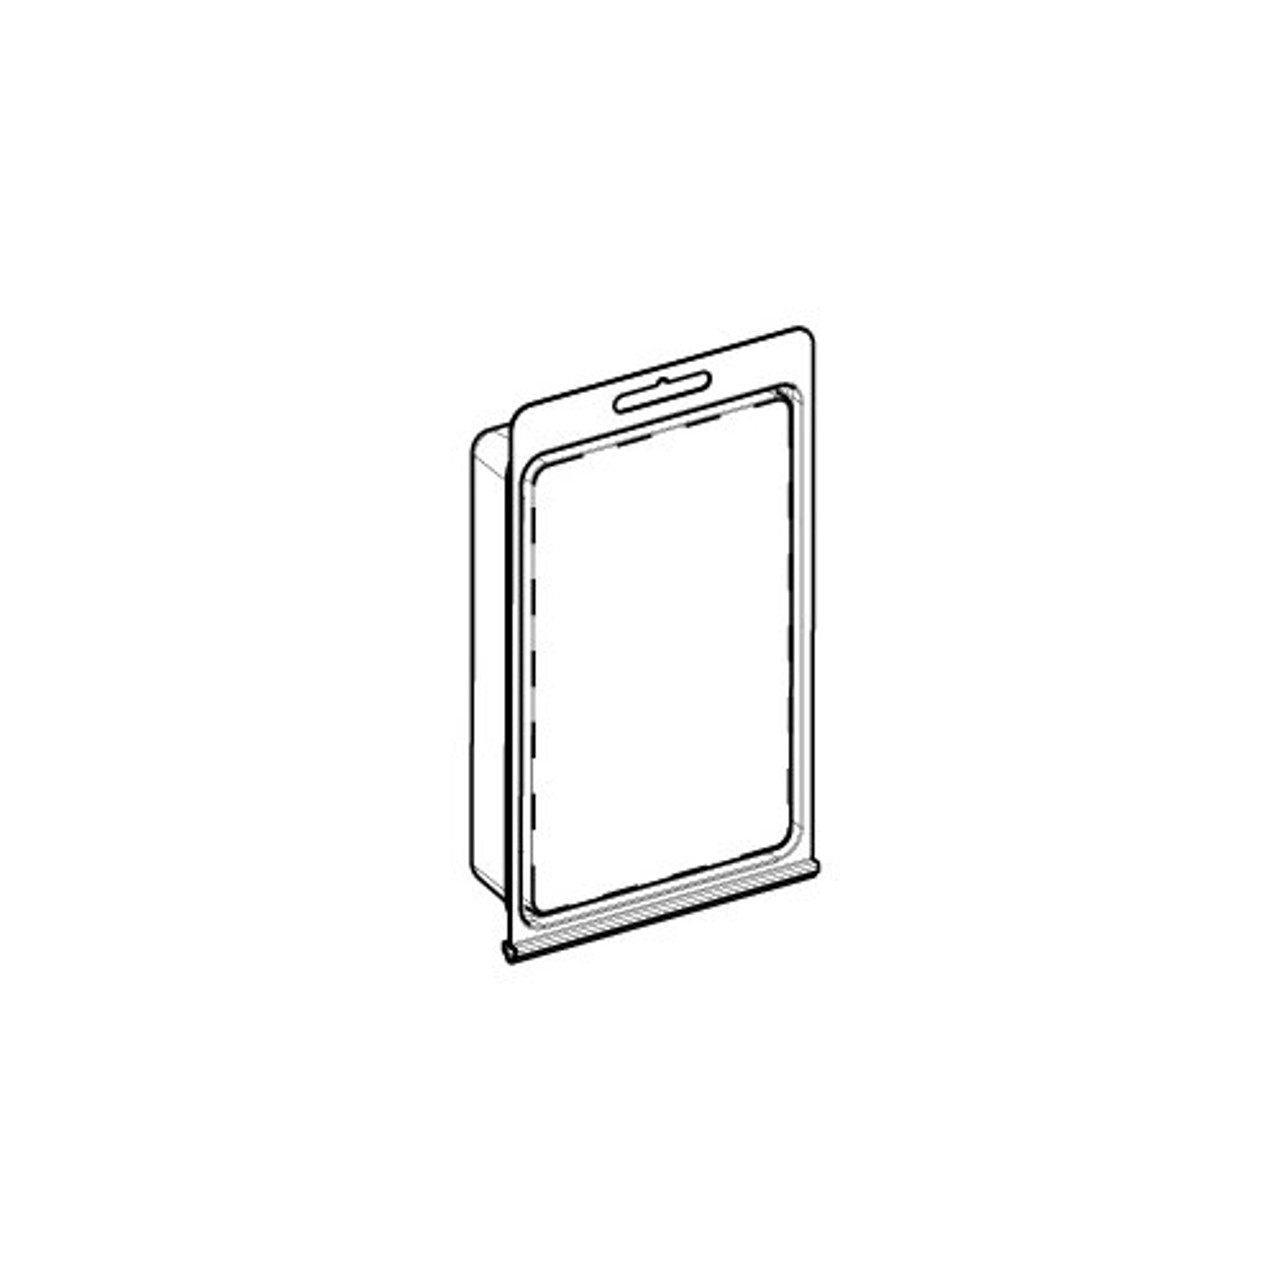 002414 - Stock Clamshell Packaging